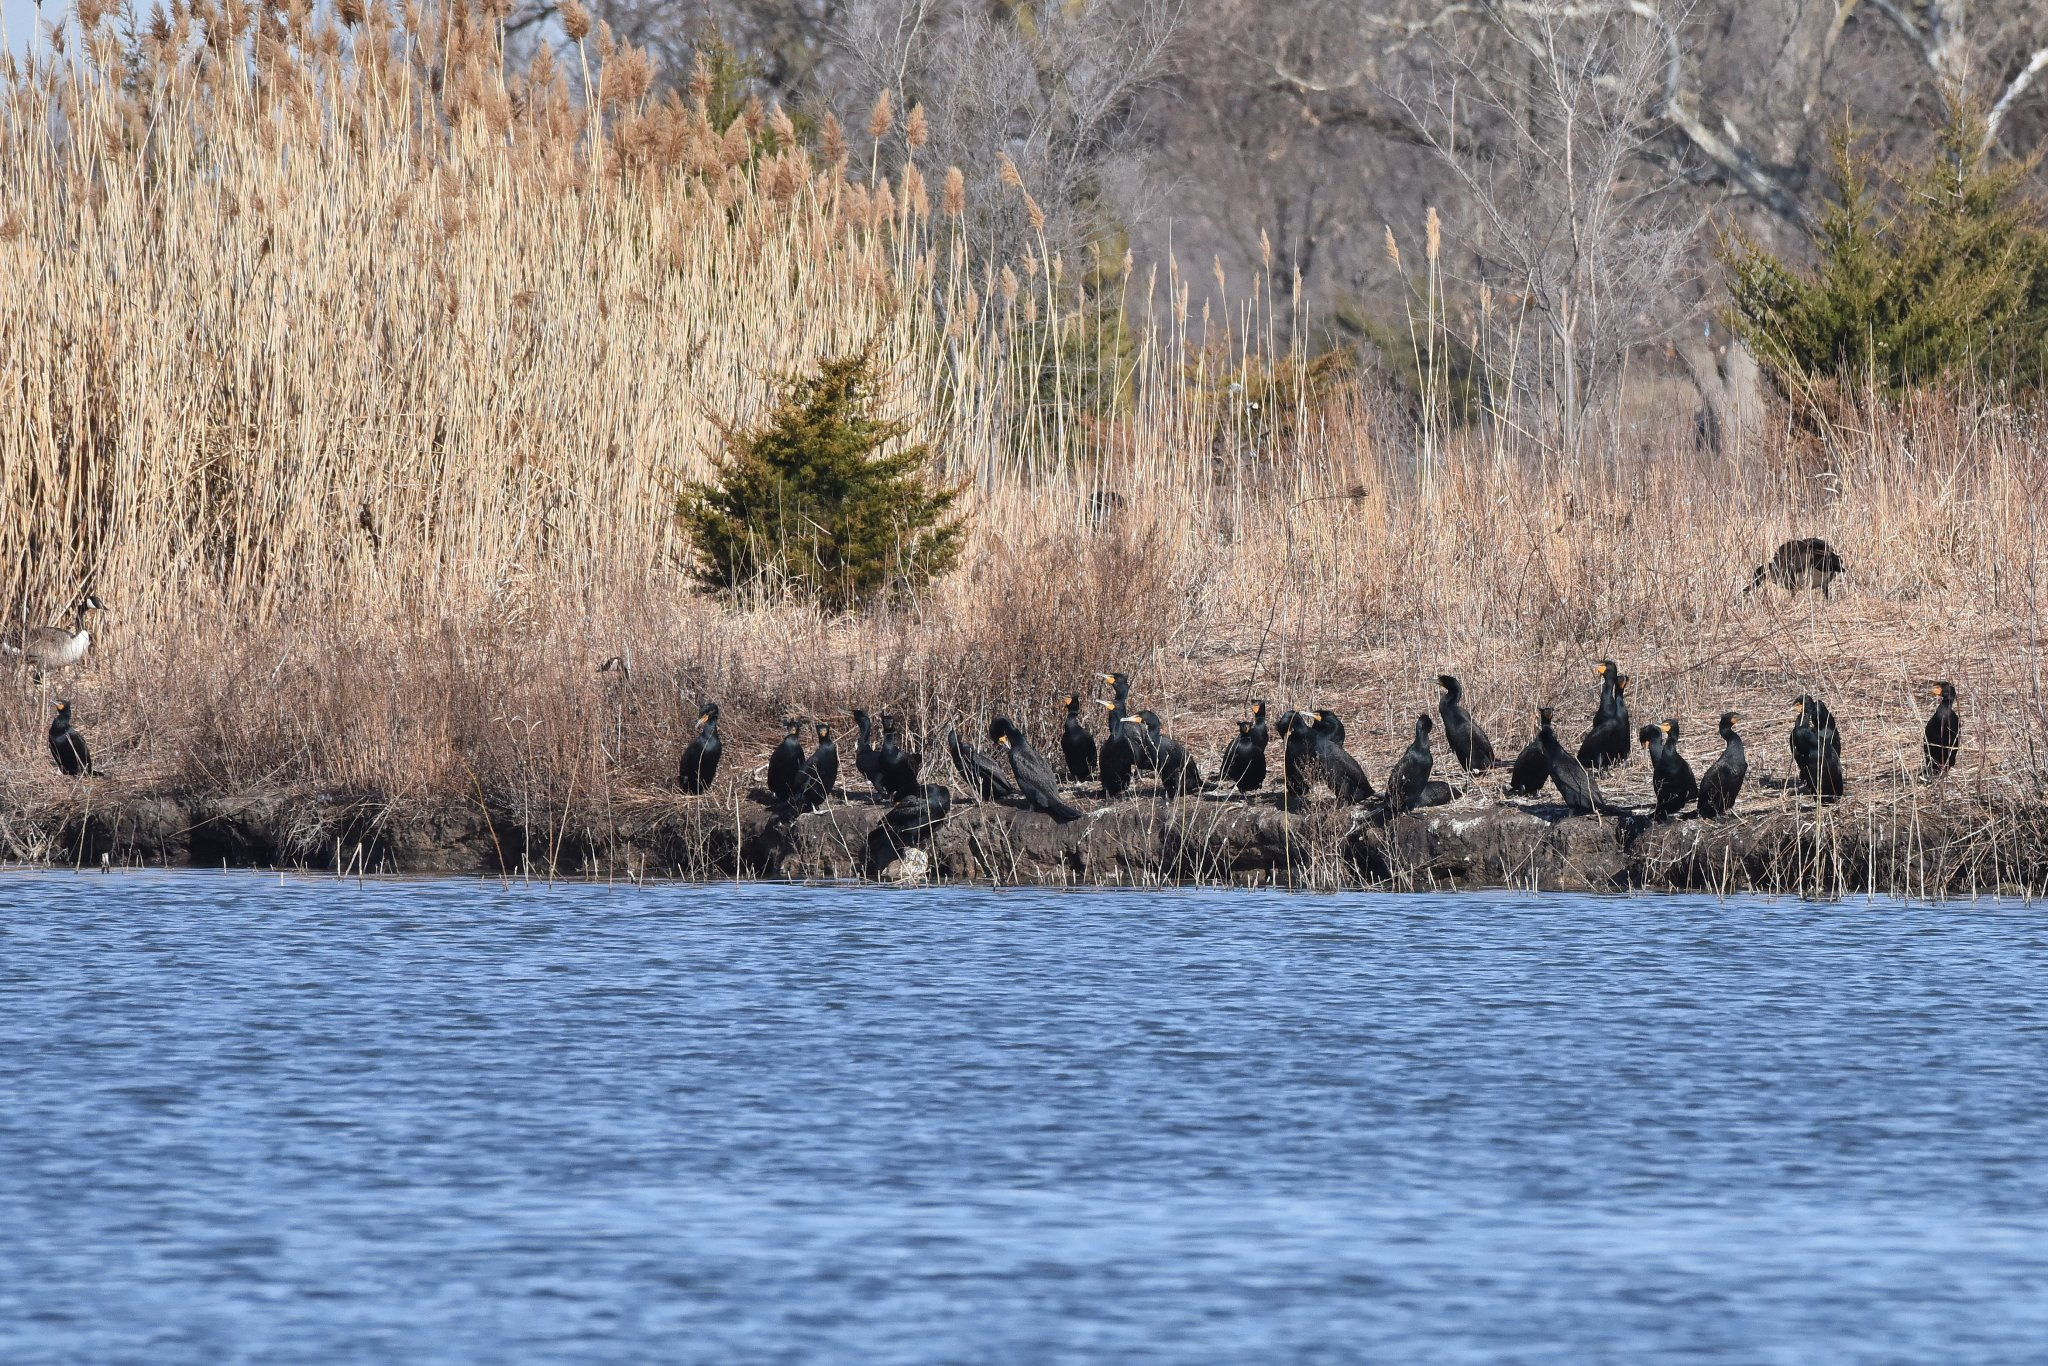 Cormorants_2_033020.JPG